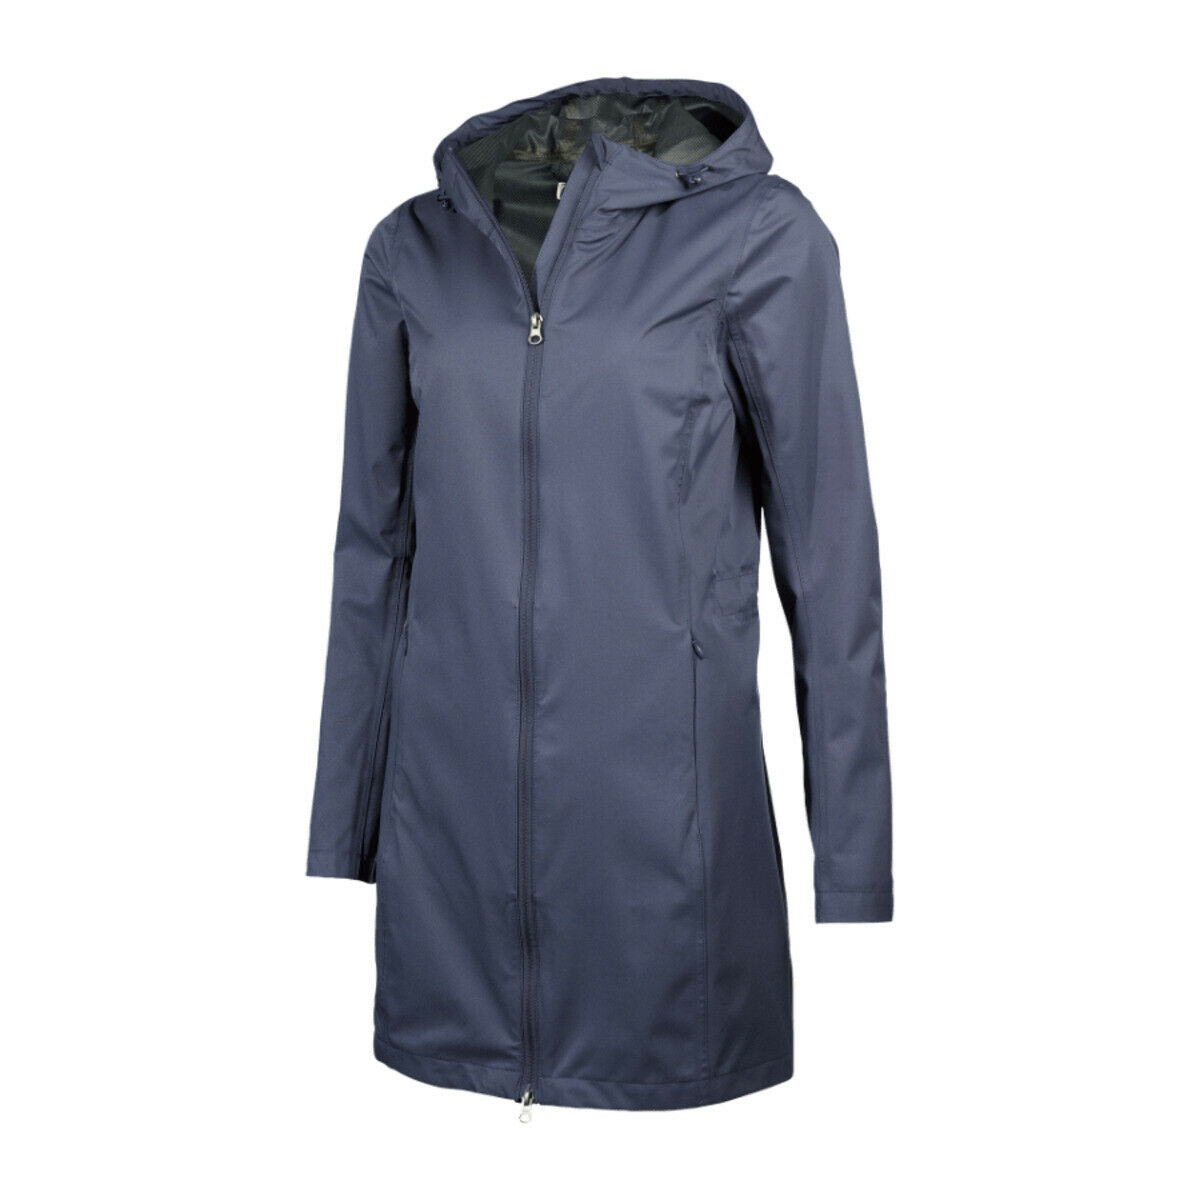 wasserdicht Winddicht UP2FASHION Damen Regenjacke Friesennerz Parka Jacke mit Kapuze